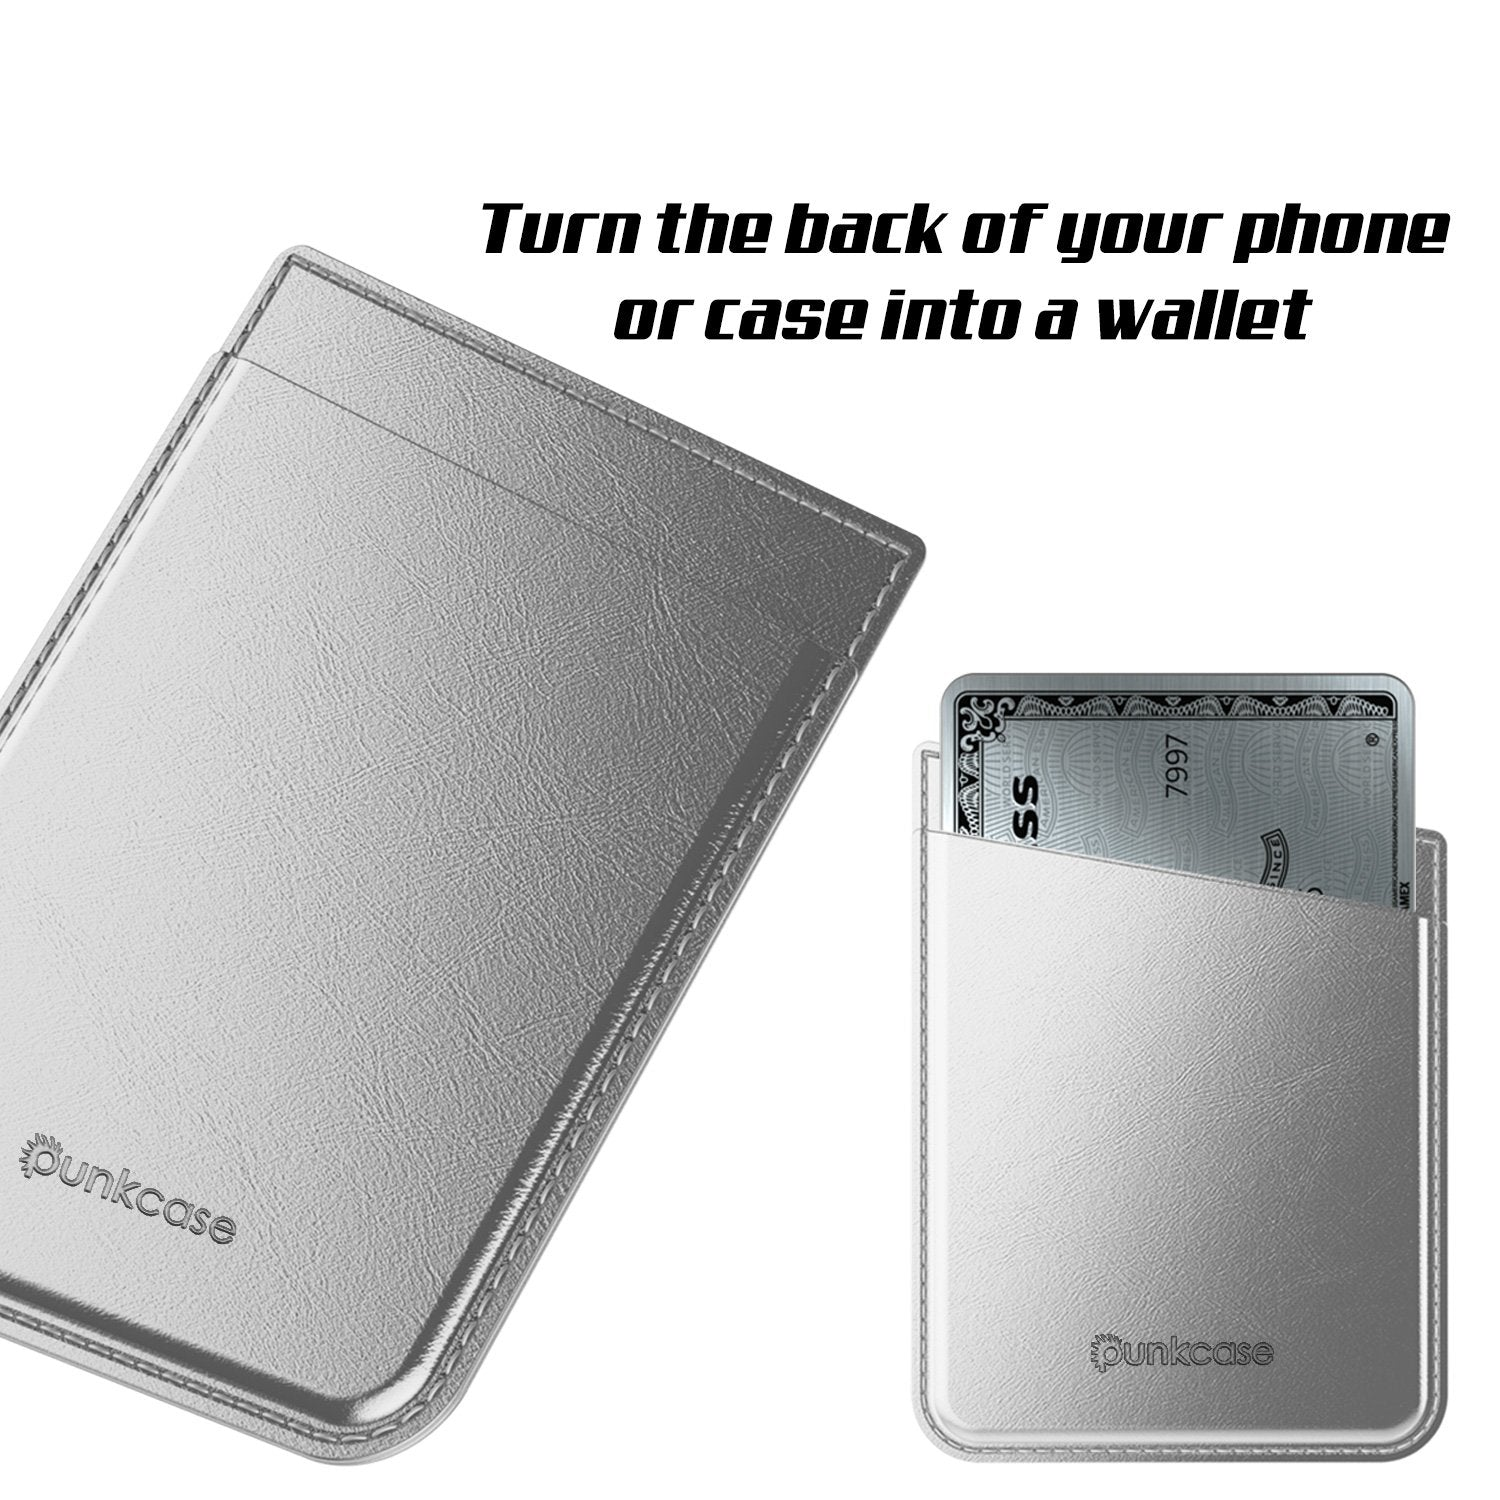 PunkCase CardStud Deluxe Stick On Wallet | Adhesive Card Holder Attachment for Back of iPhone, Android & More | Leather Pouch | [Silver] - PunkCase NZ